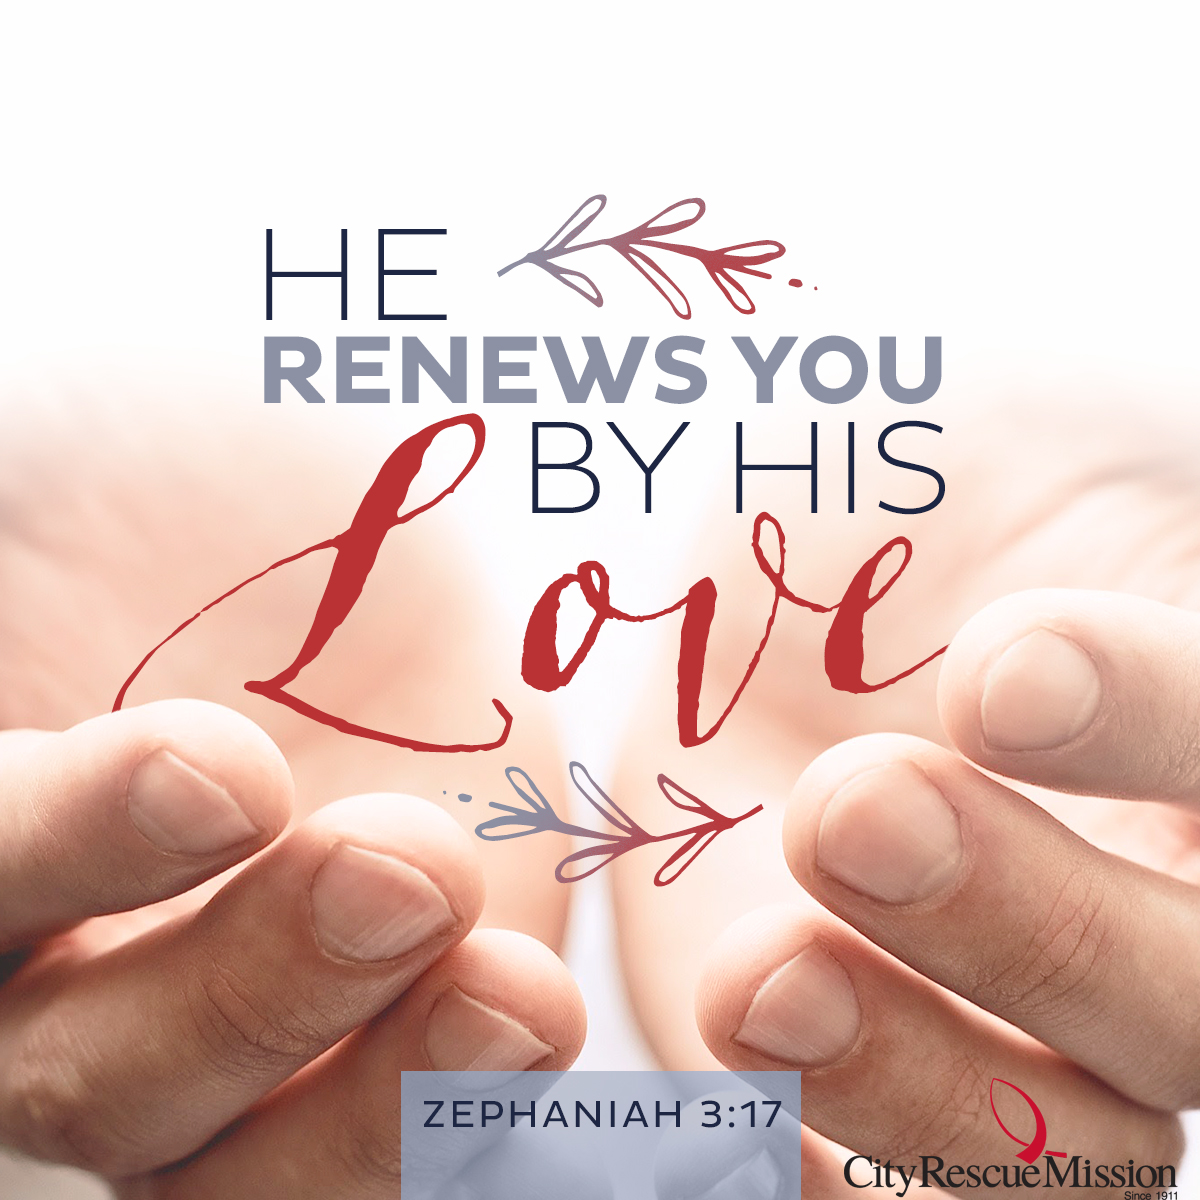 He Renews You by His Love